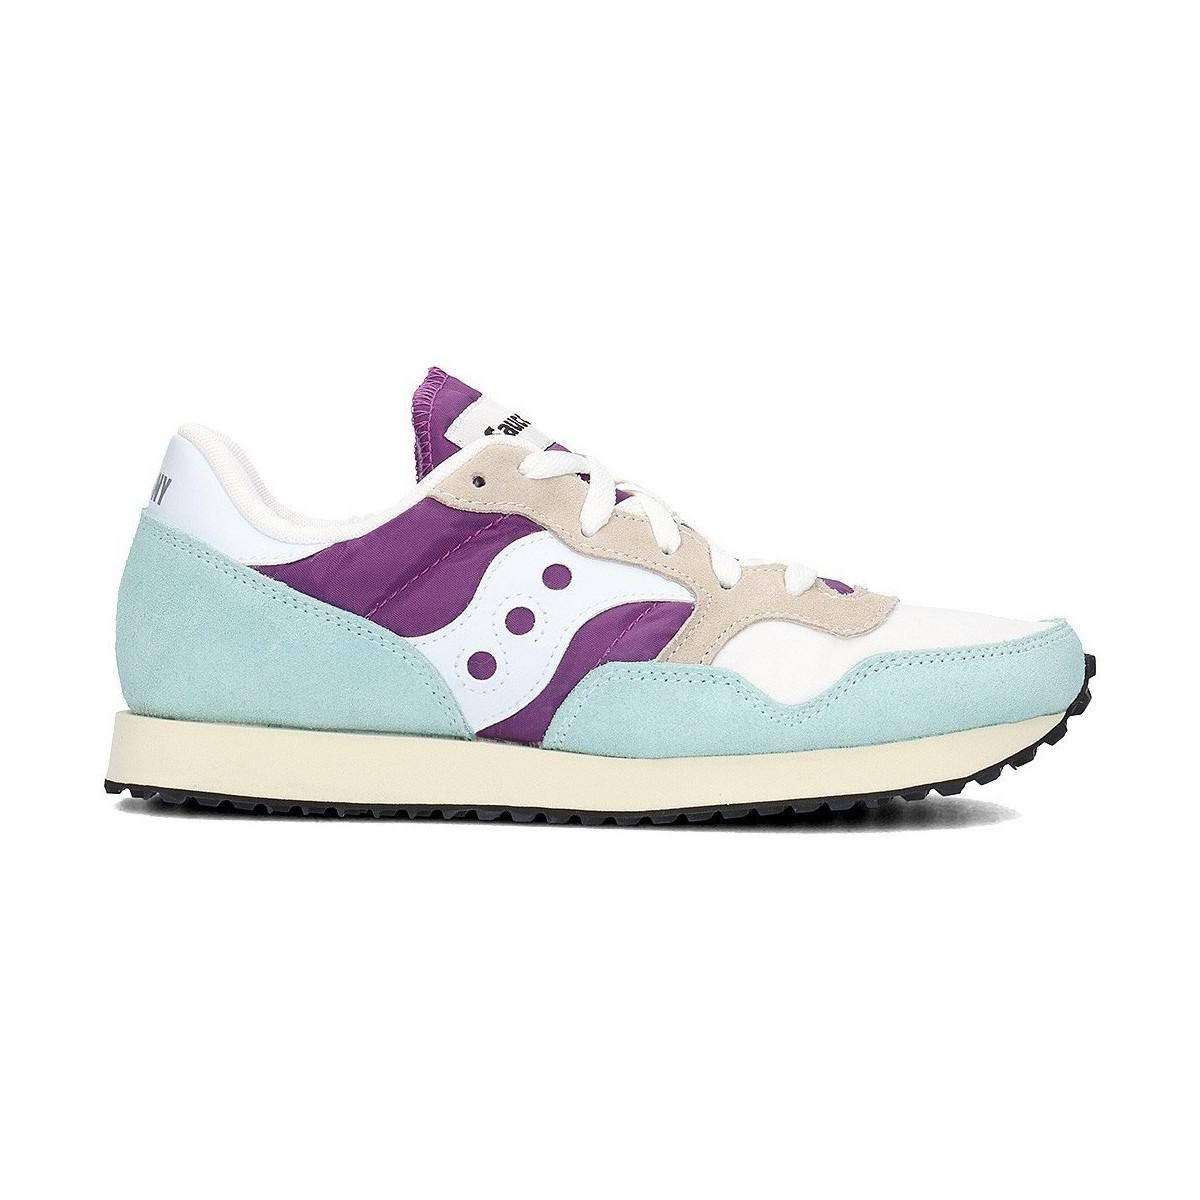 Saucony DXN Trainer sneakers in anthracite and pink suede women's Shoes (Trainers) in Pre Order Sale Online Best Sale For Sale Good Selling Cheap Online Comfortable Cheap Online 7wolE3EcT